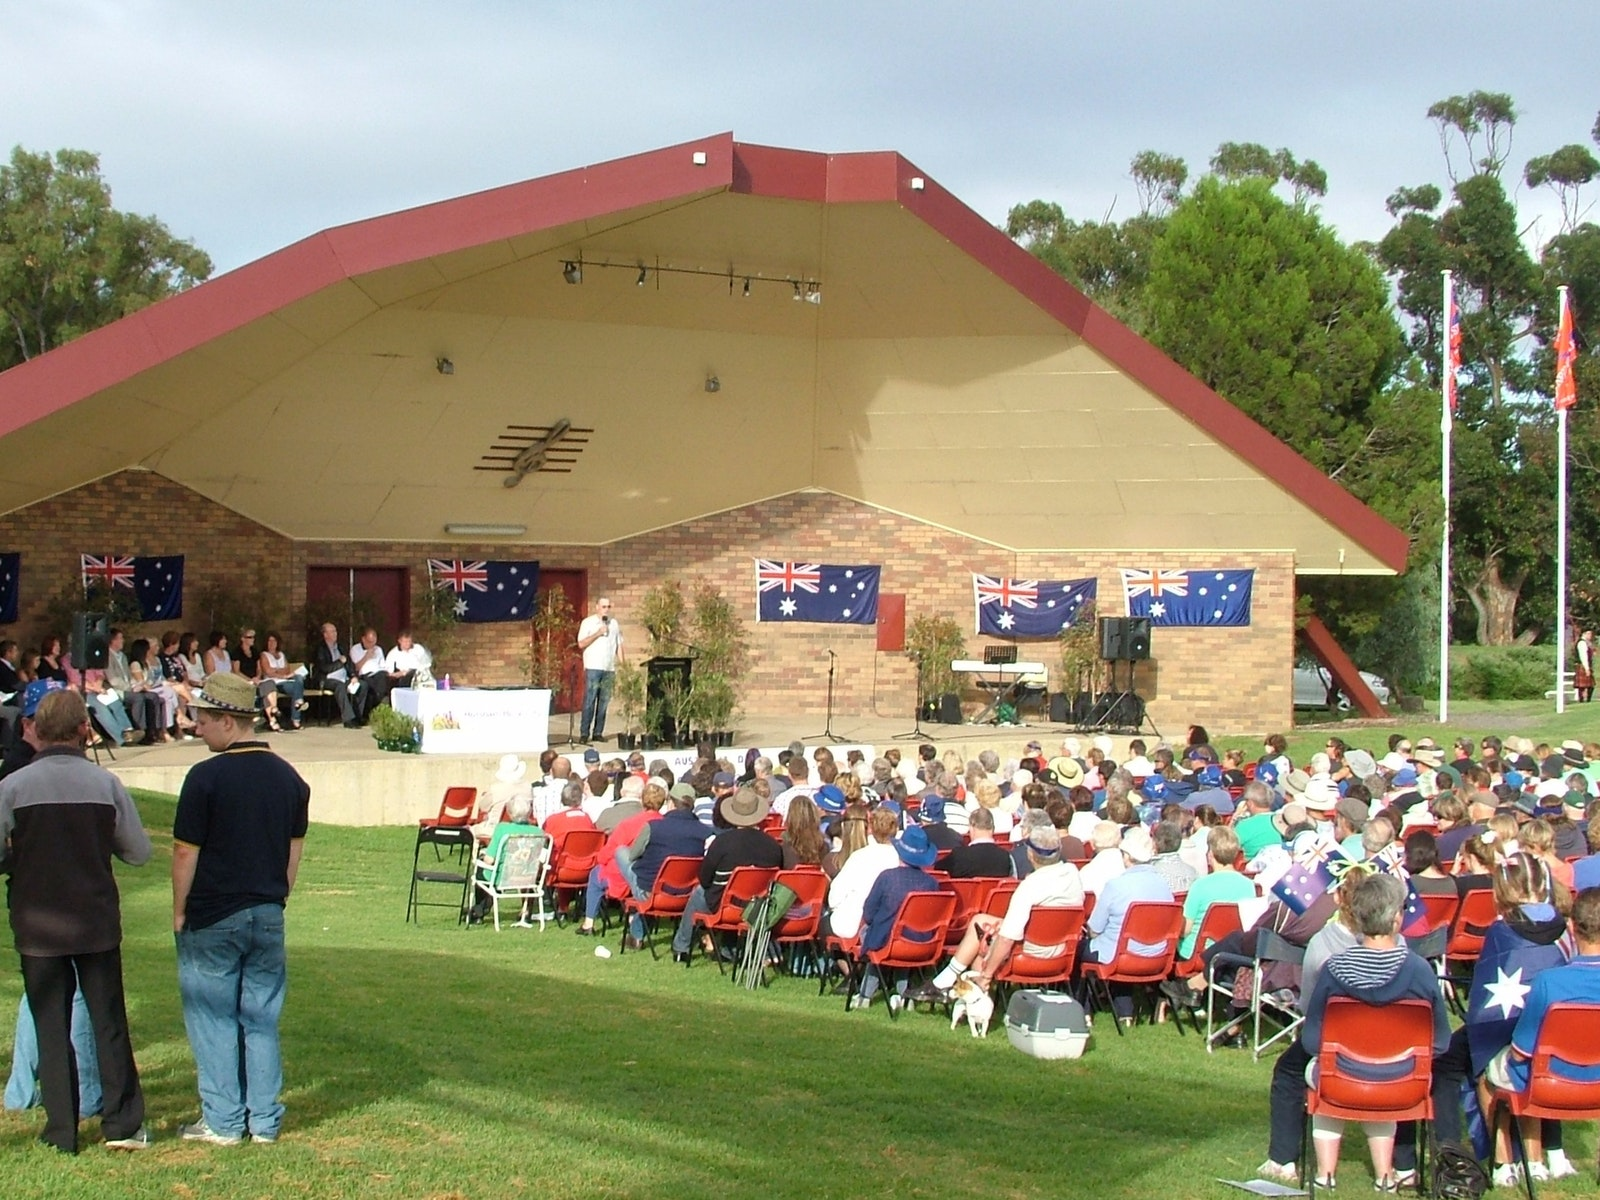 Australia Day Celebrations in Horsham